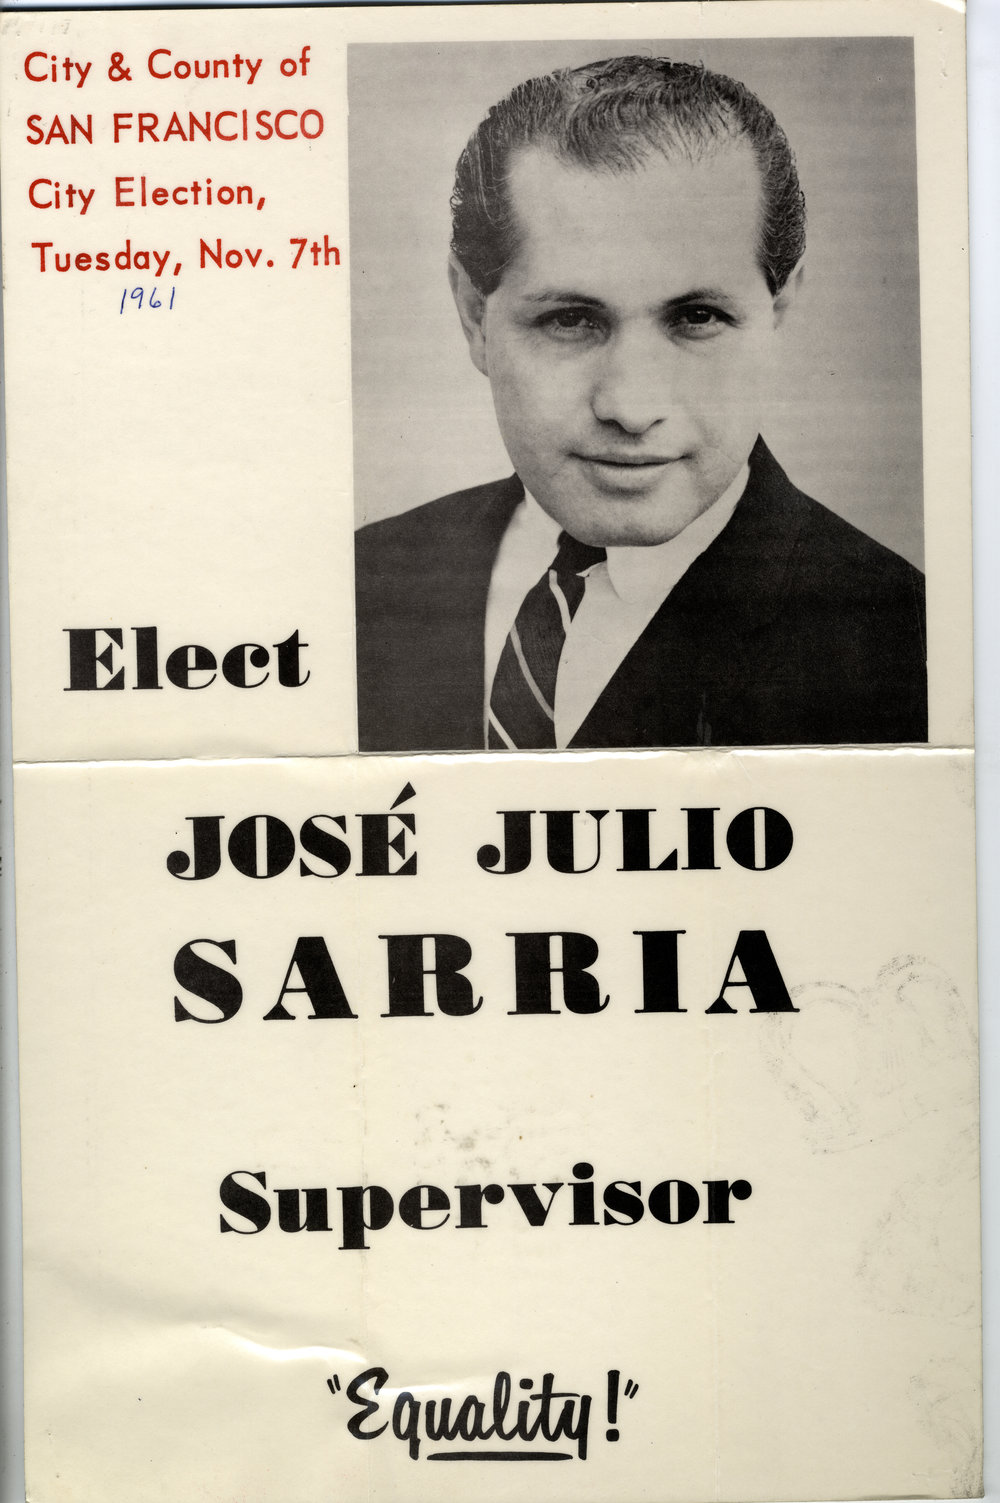 June 29, 2018 - Nelly Queen The Life and Times of Jose Sarria - election 1961 - photo credit Joe Castel.JPG